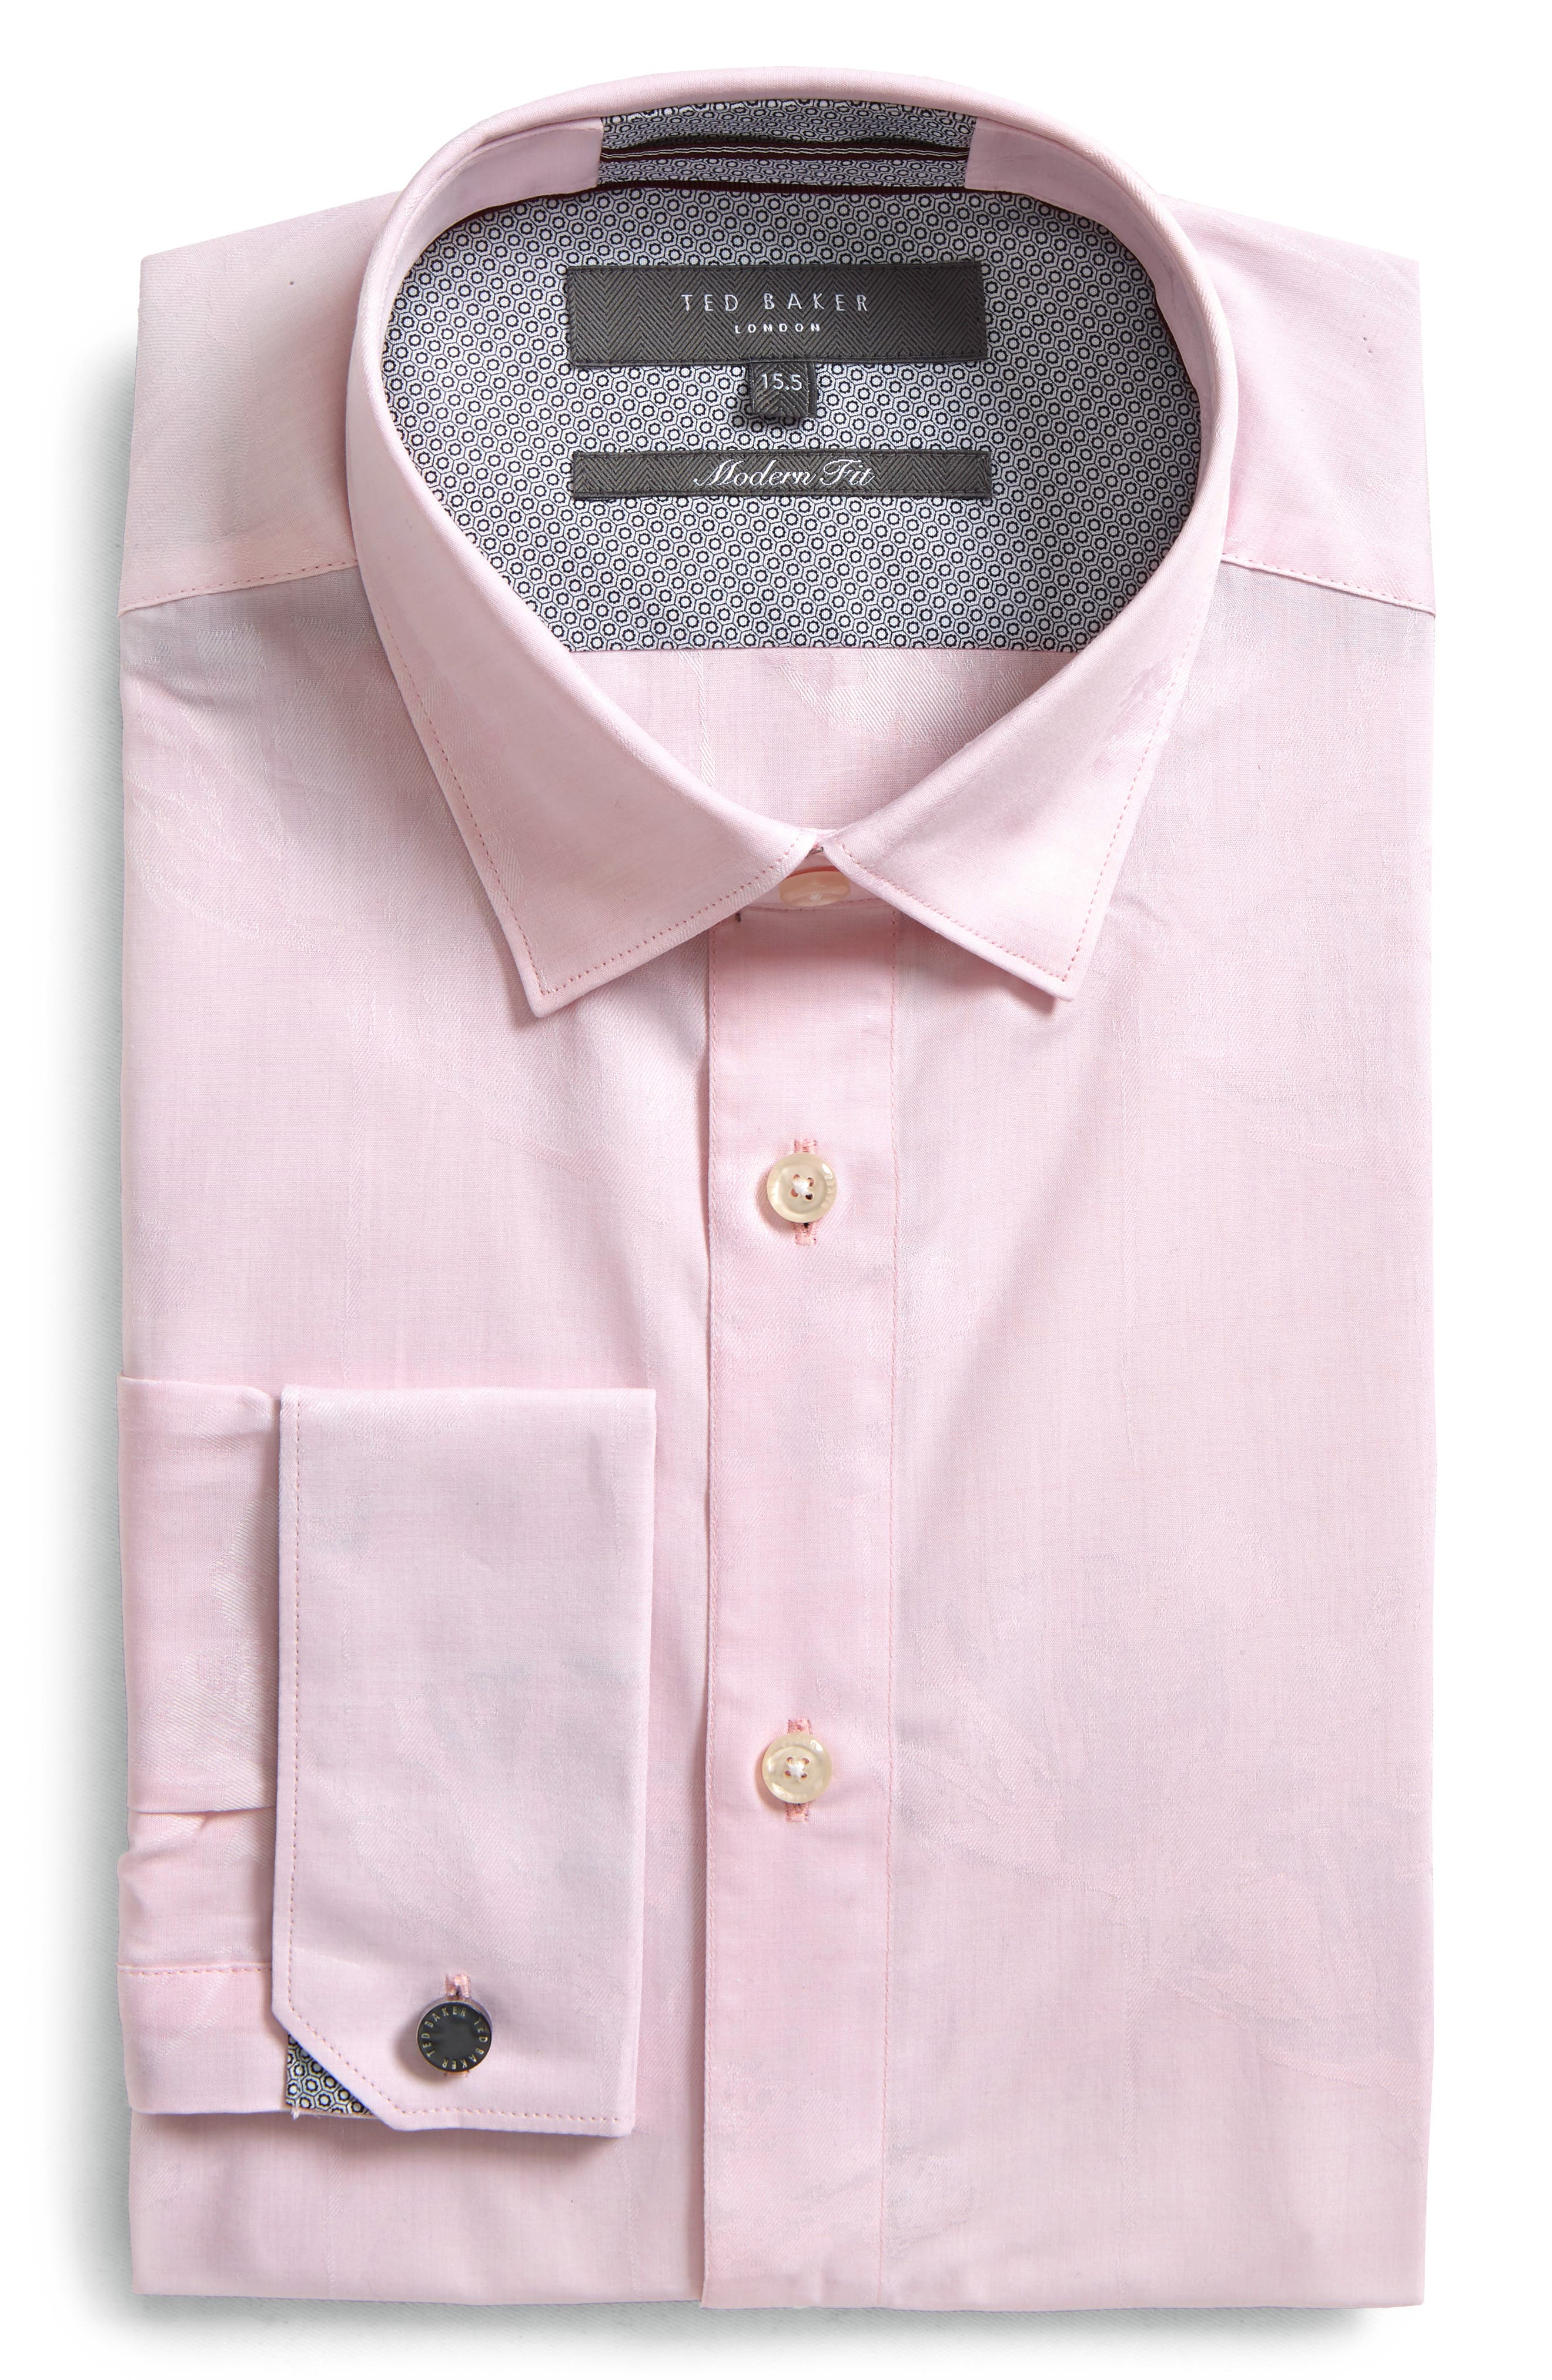 5440da5c44414 Men s Ted Baker London Dress Shirts